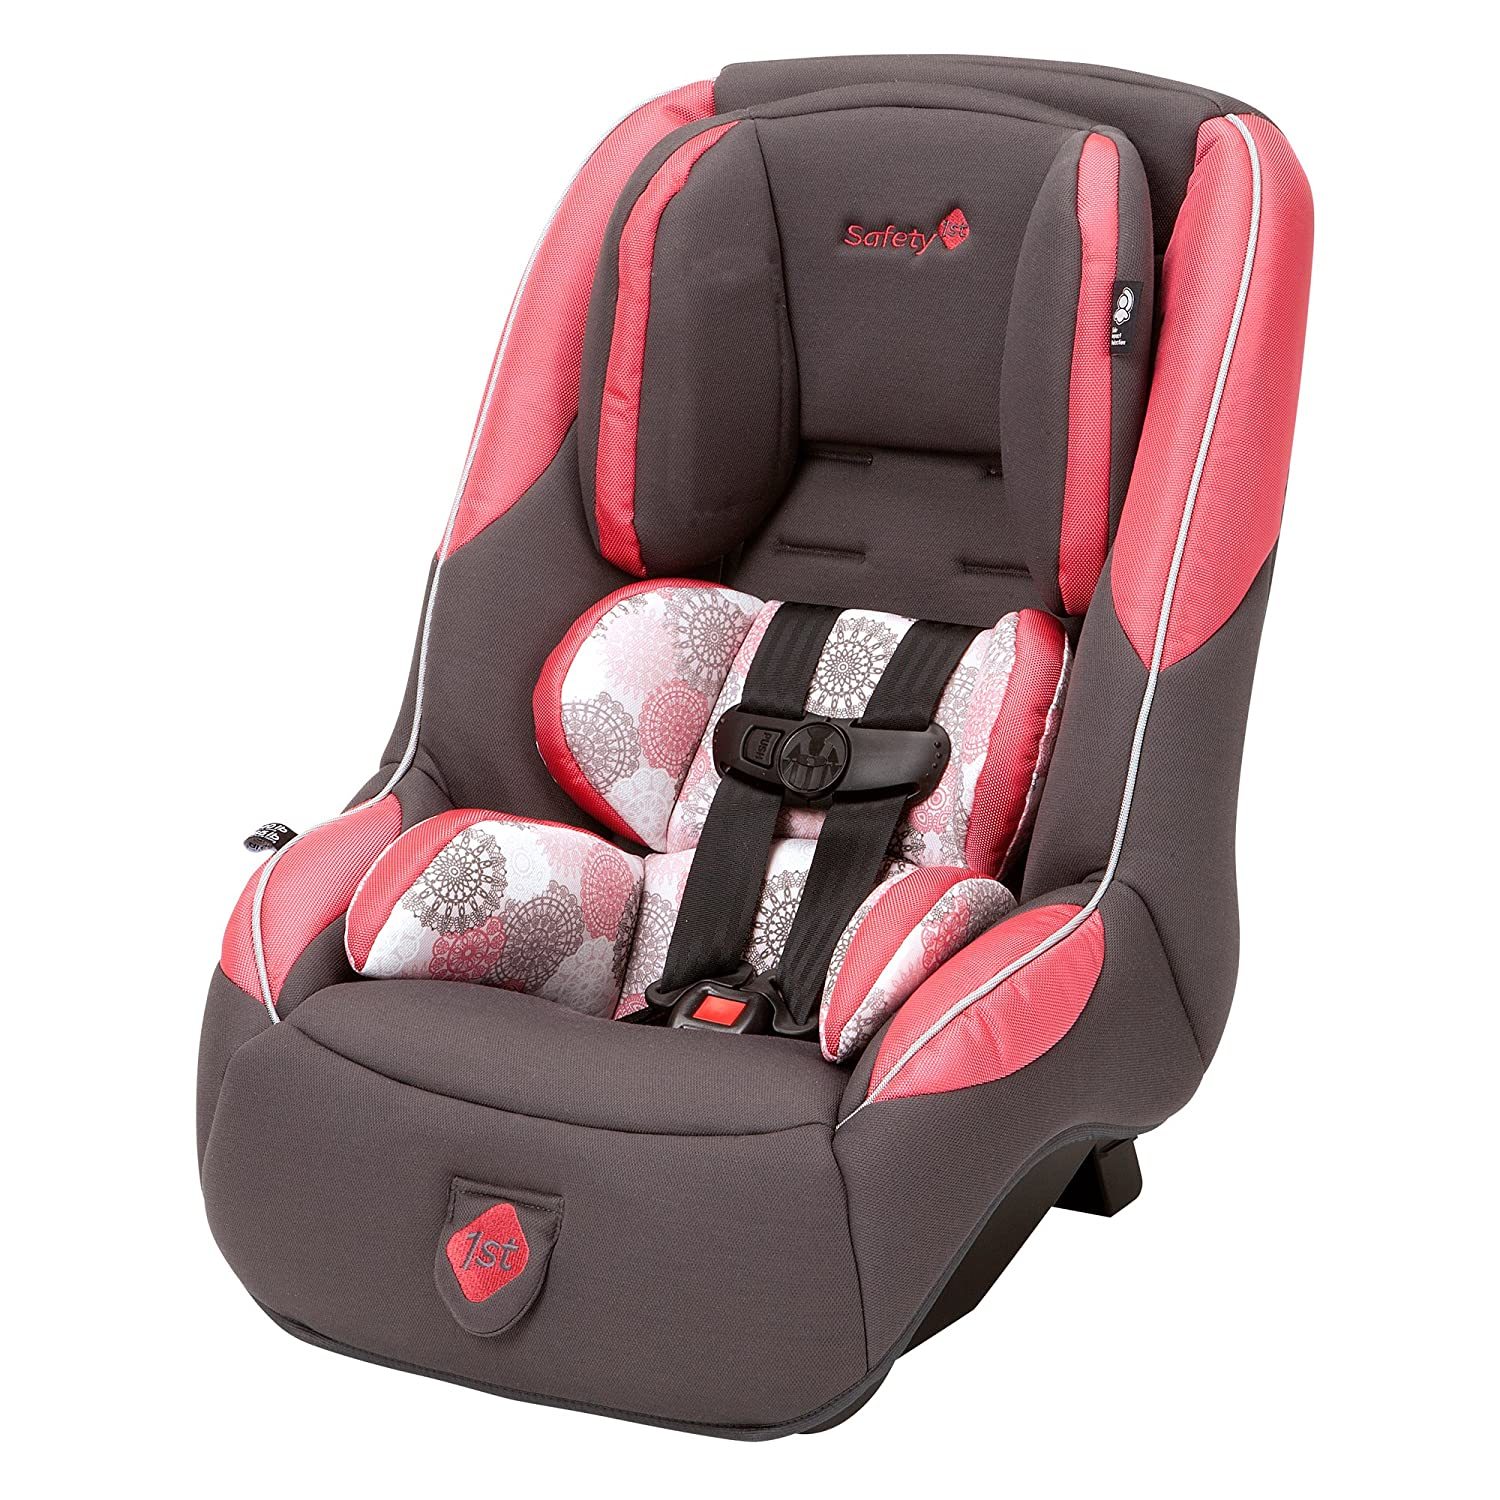 Amazon.com : Safety 1st Guide 65 Convertible Car Seat, Cau : Baby